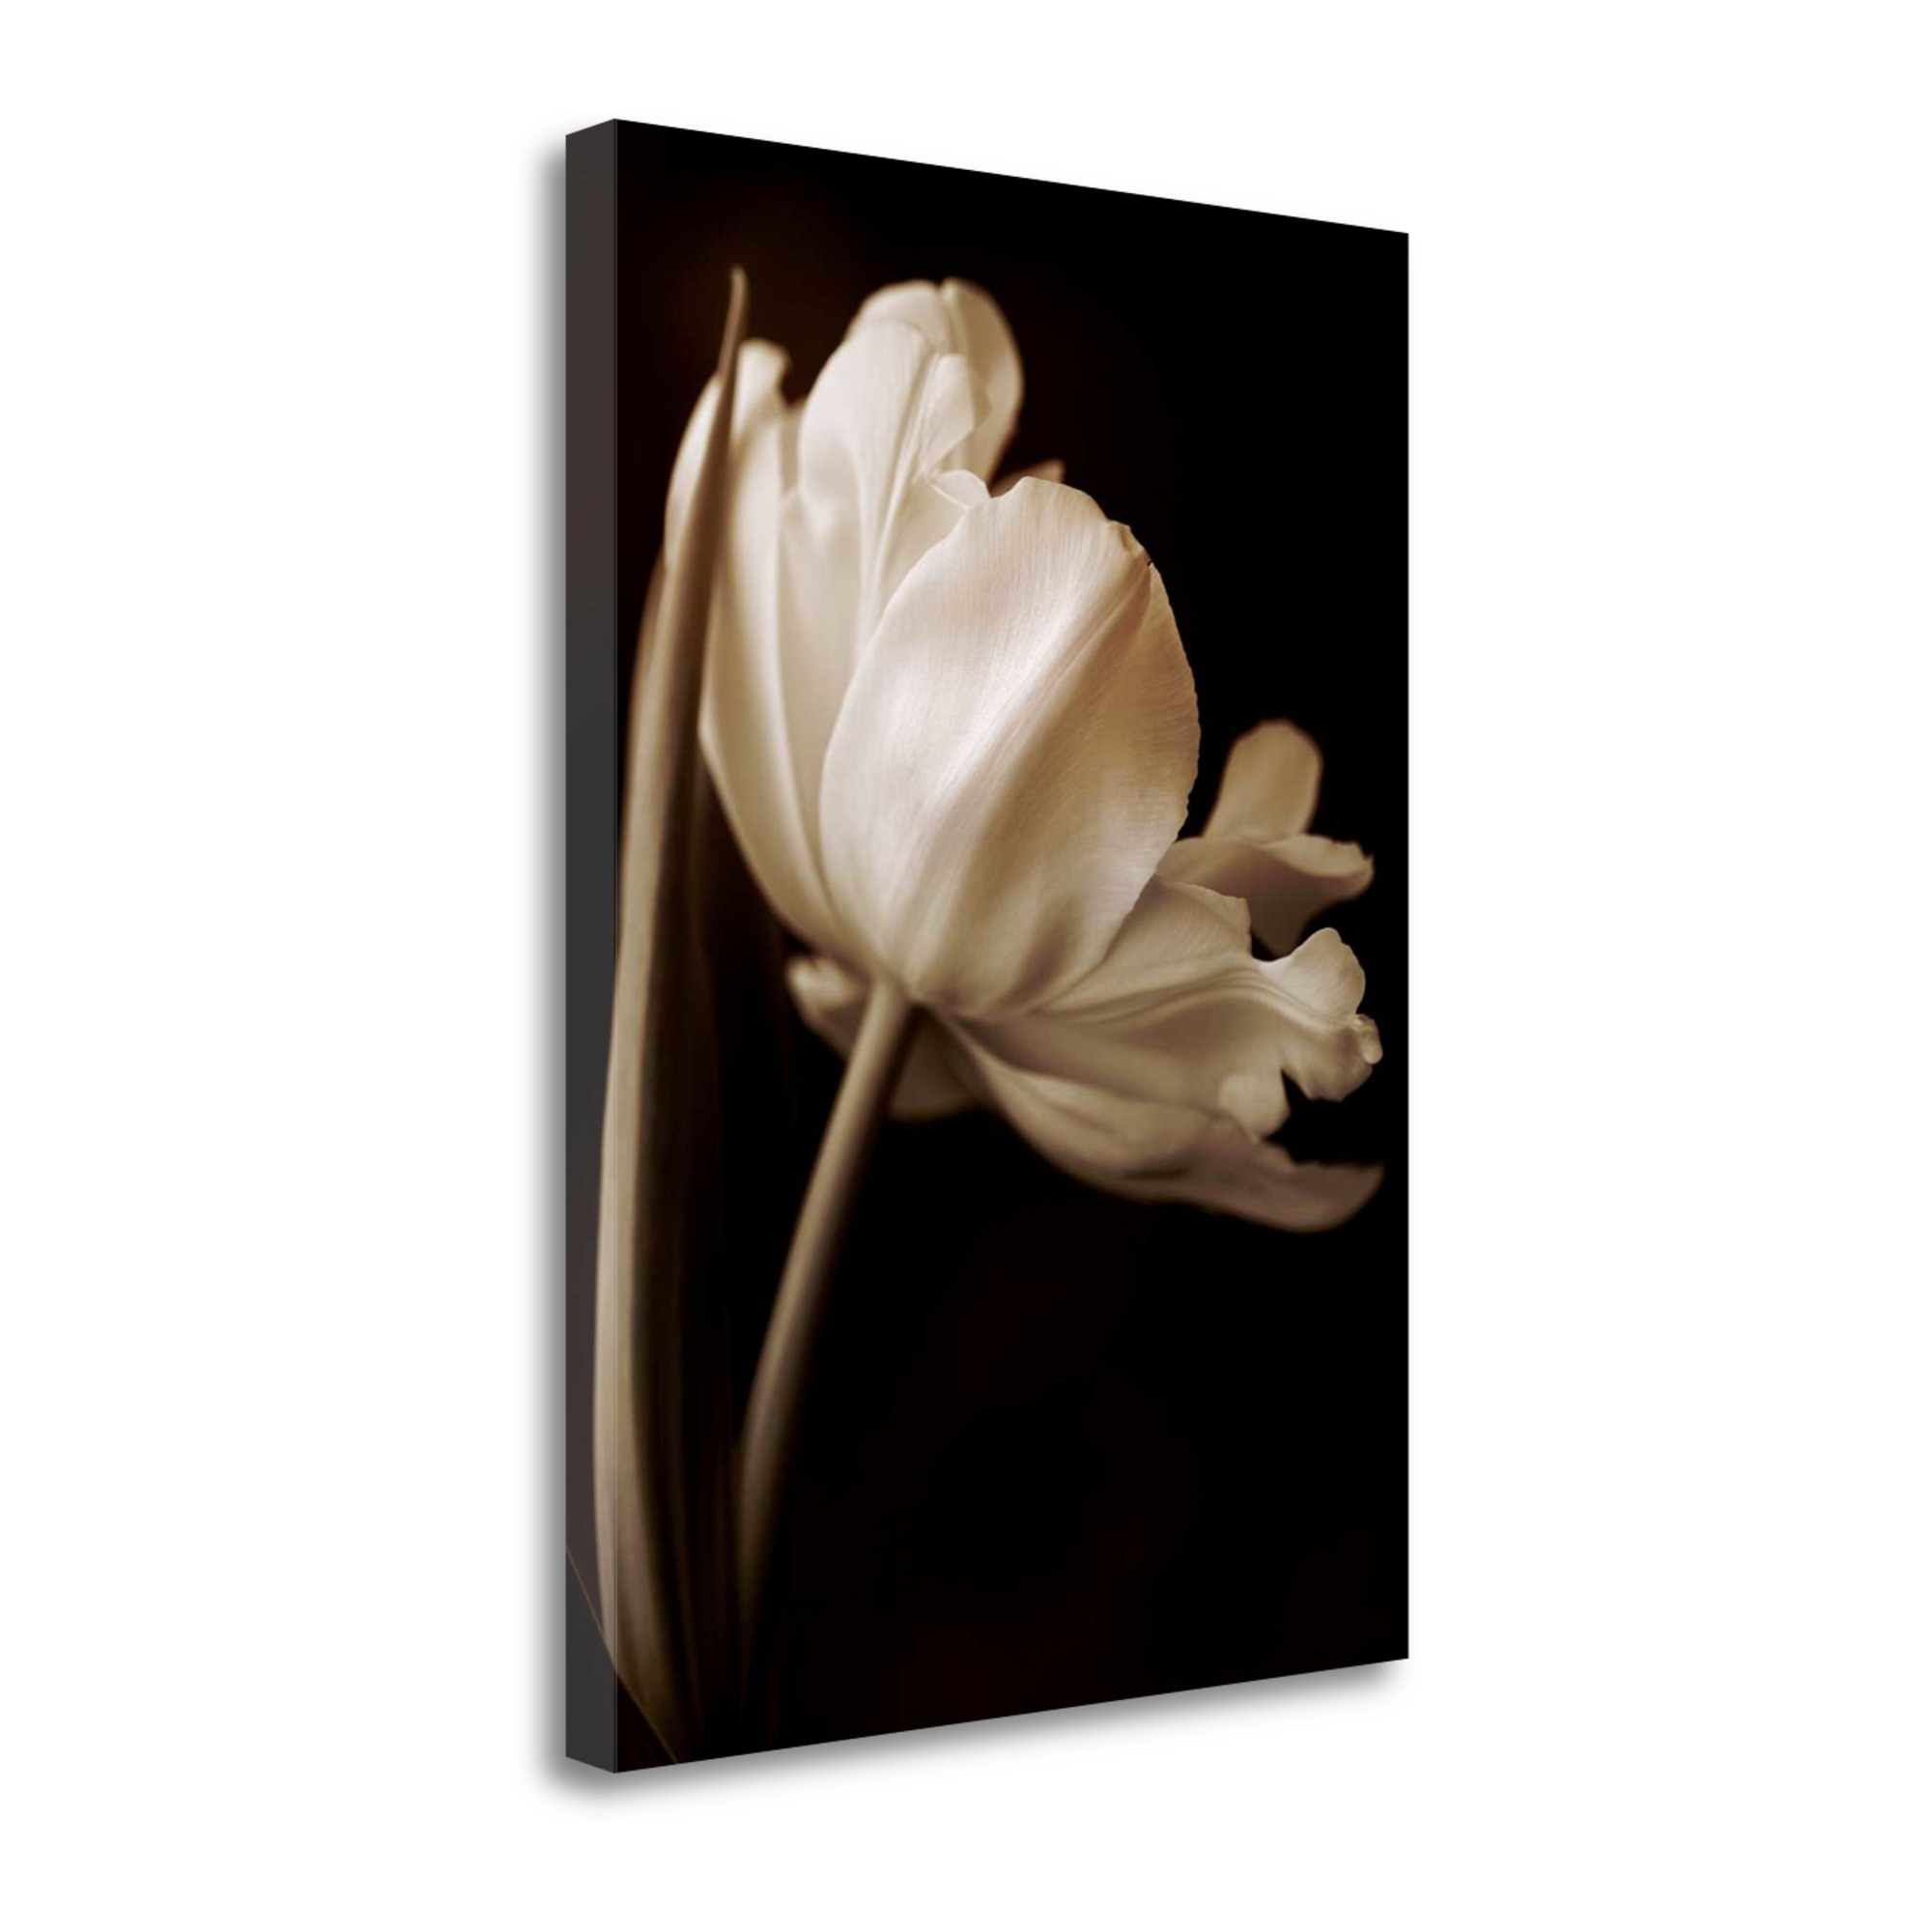 "Champagne Tulip I By Charles Britt, 25"" x 33\"" Fine Art Giclee Print on Gallery Wrap Canvas, Ready to Hang"